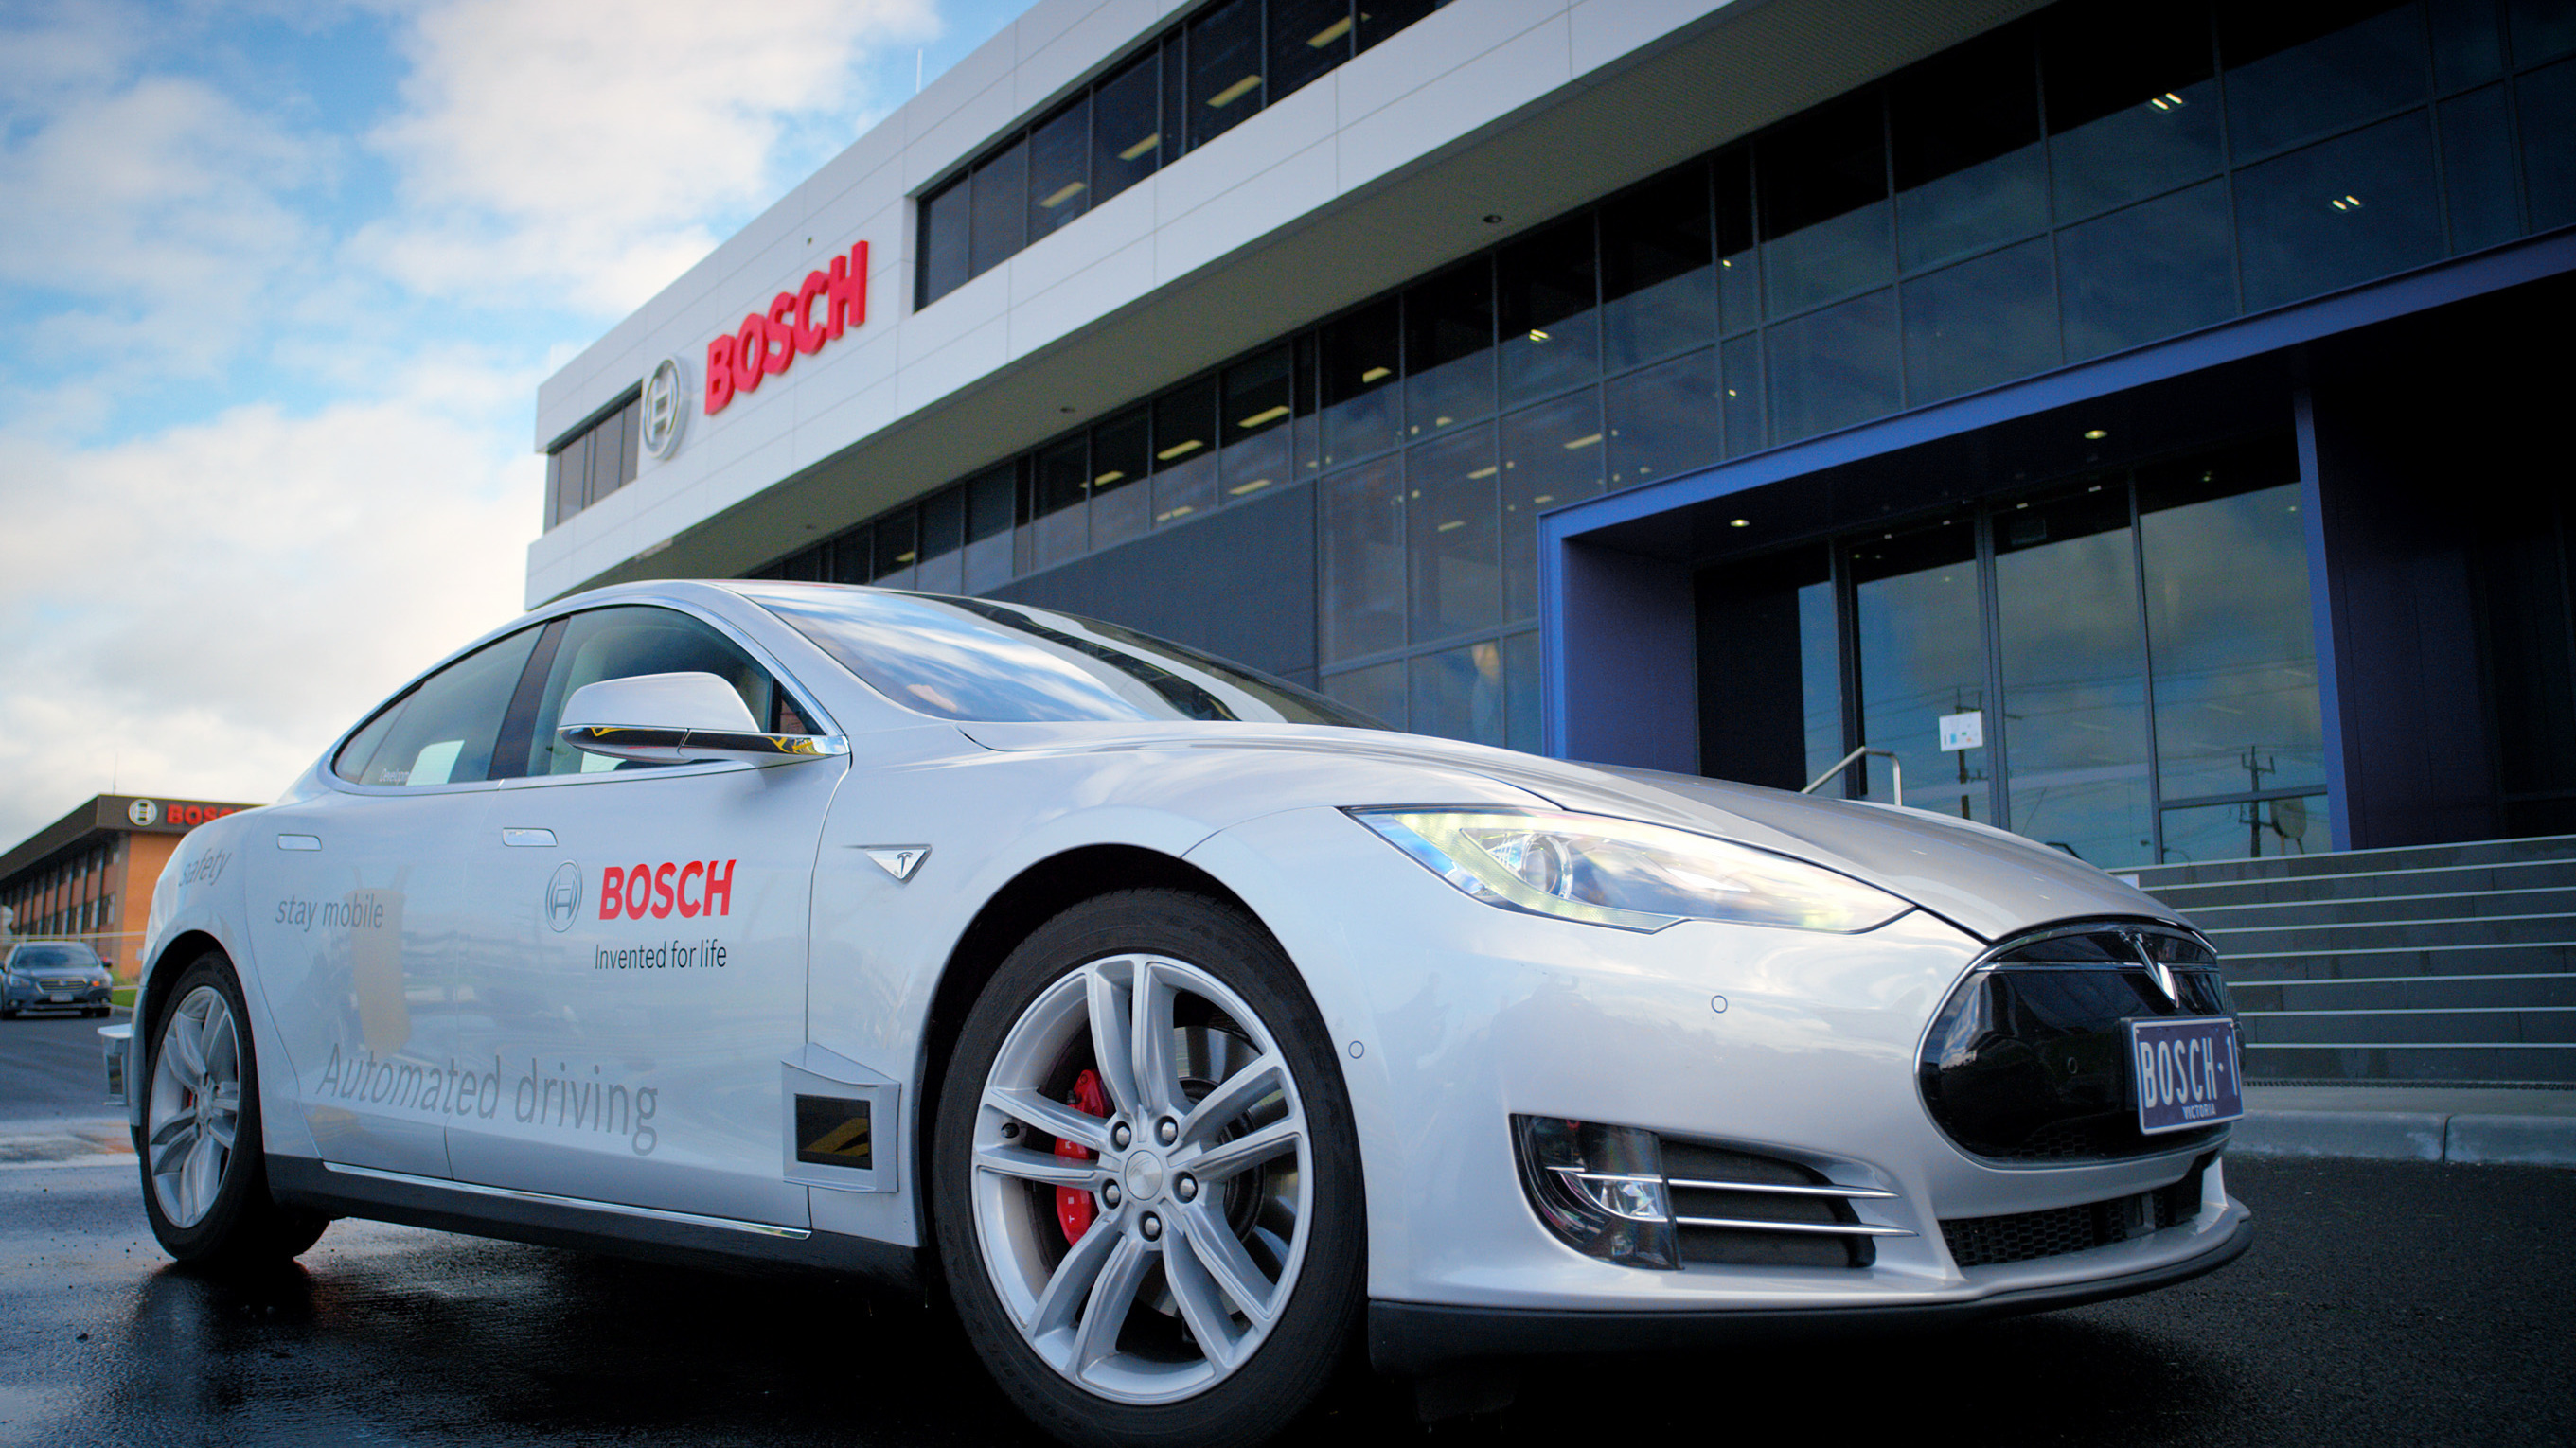 With automated driving, focus is on the driver - Bosch Media Service